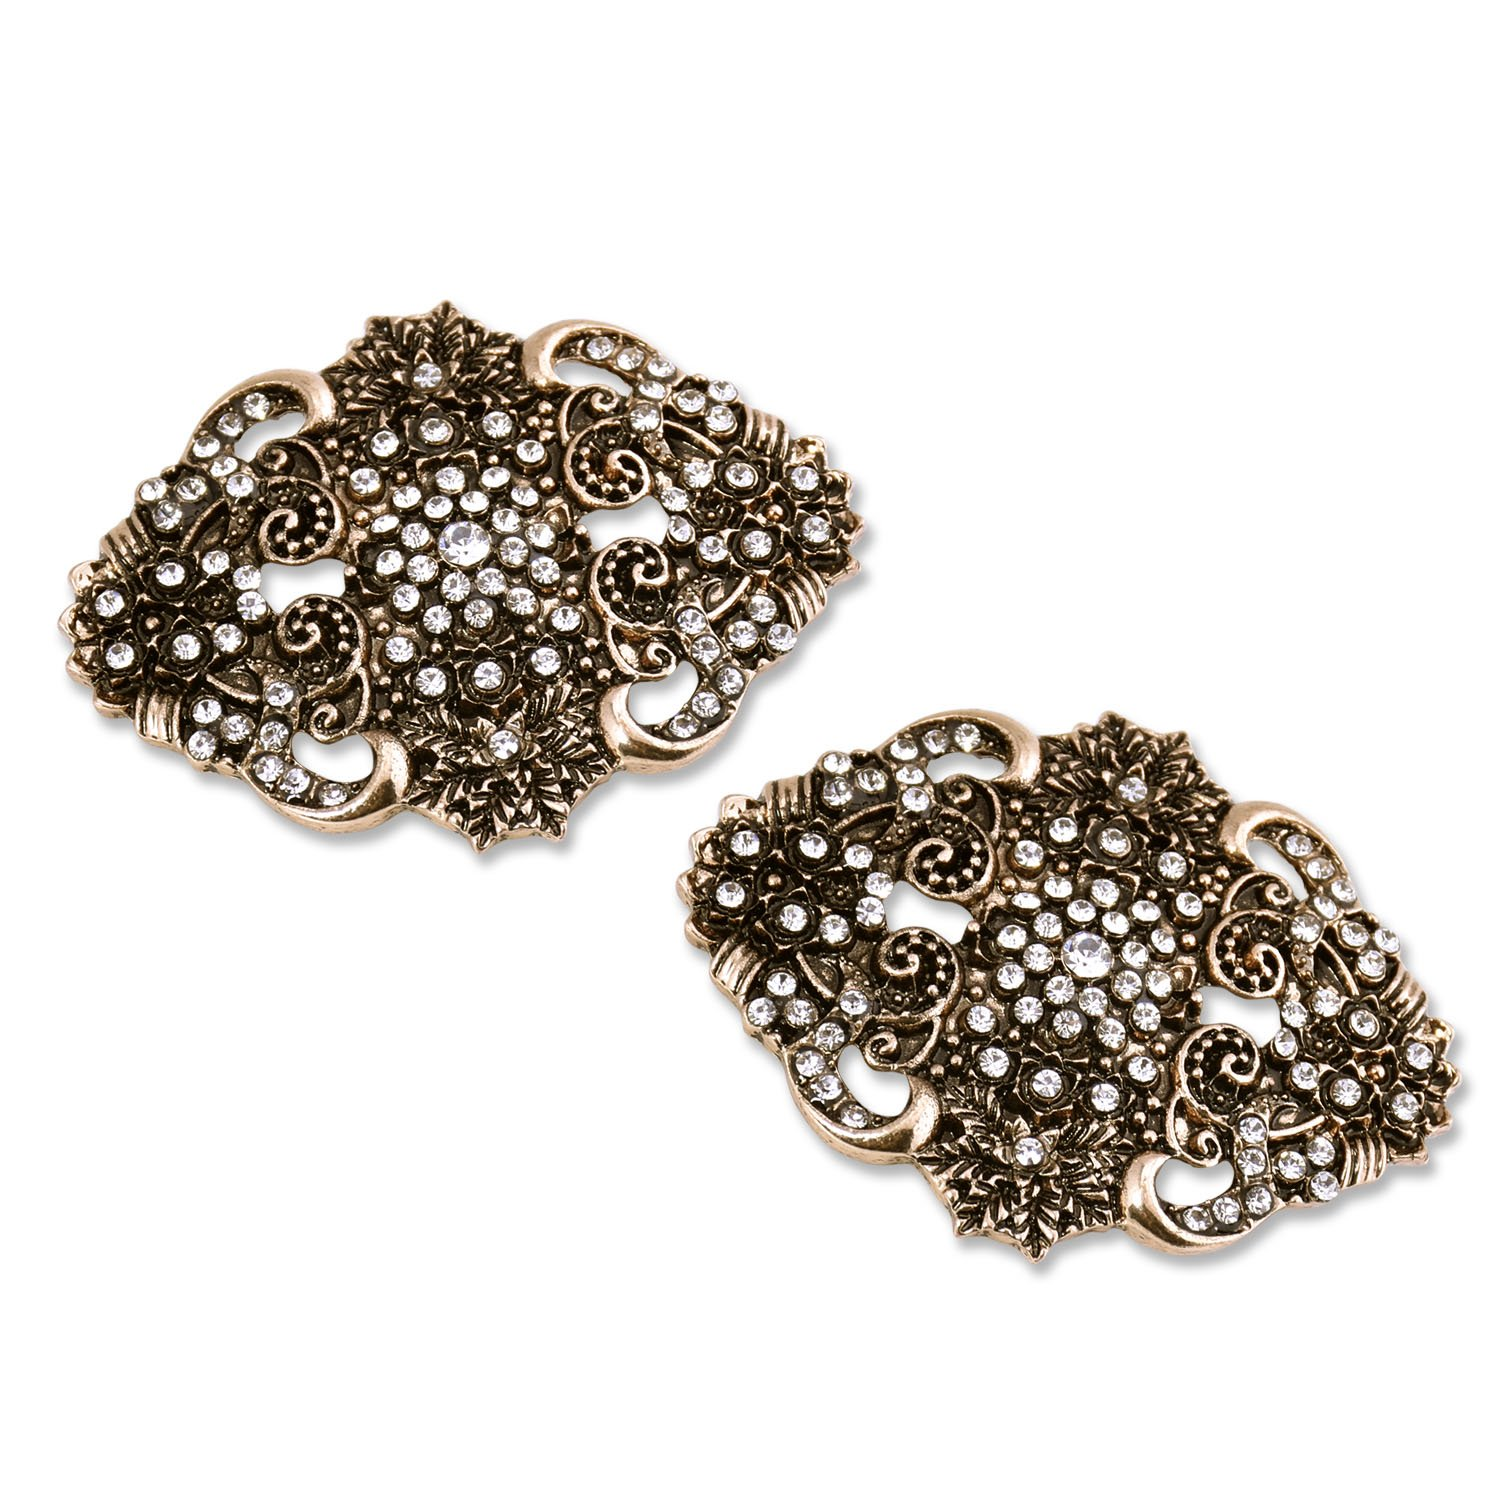 ElegantPark BM Vintage Flowers Rhinestones Wedding Party Decoration Shoe Clips Antique Gold 2 Pcs